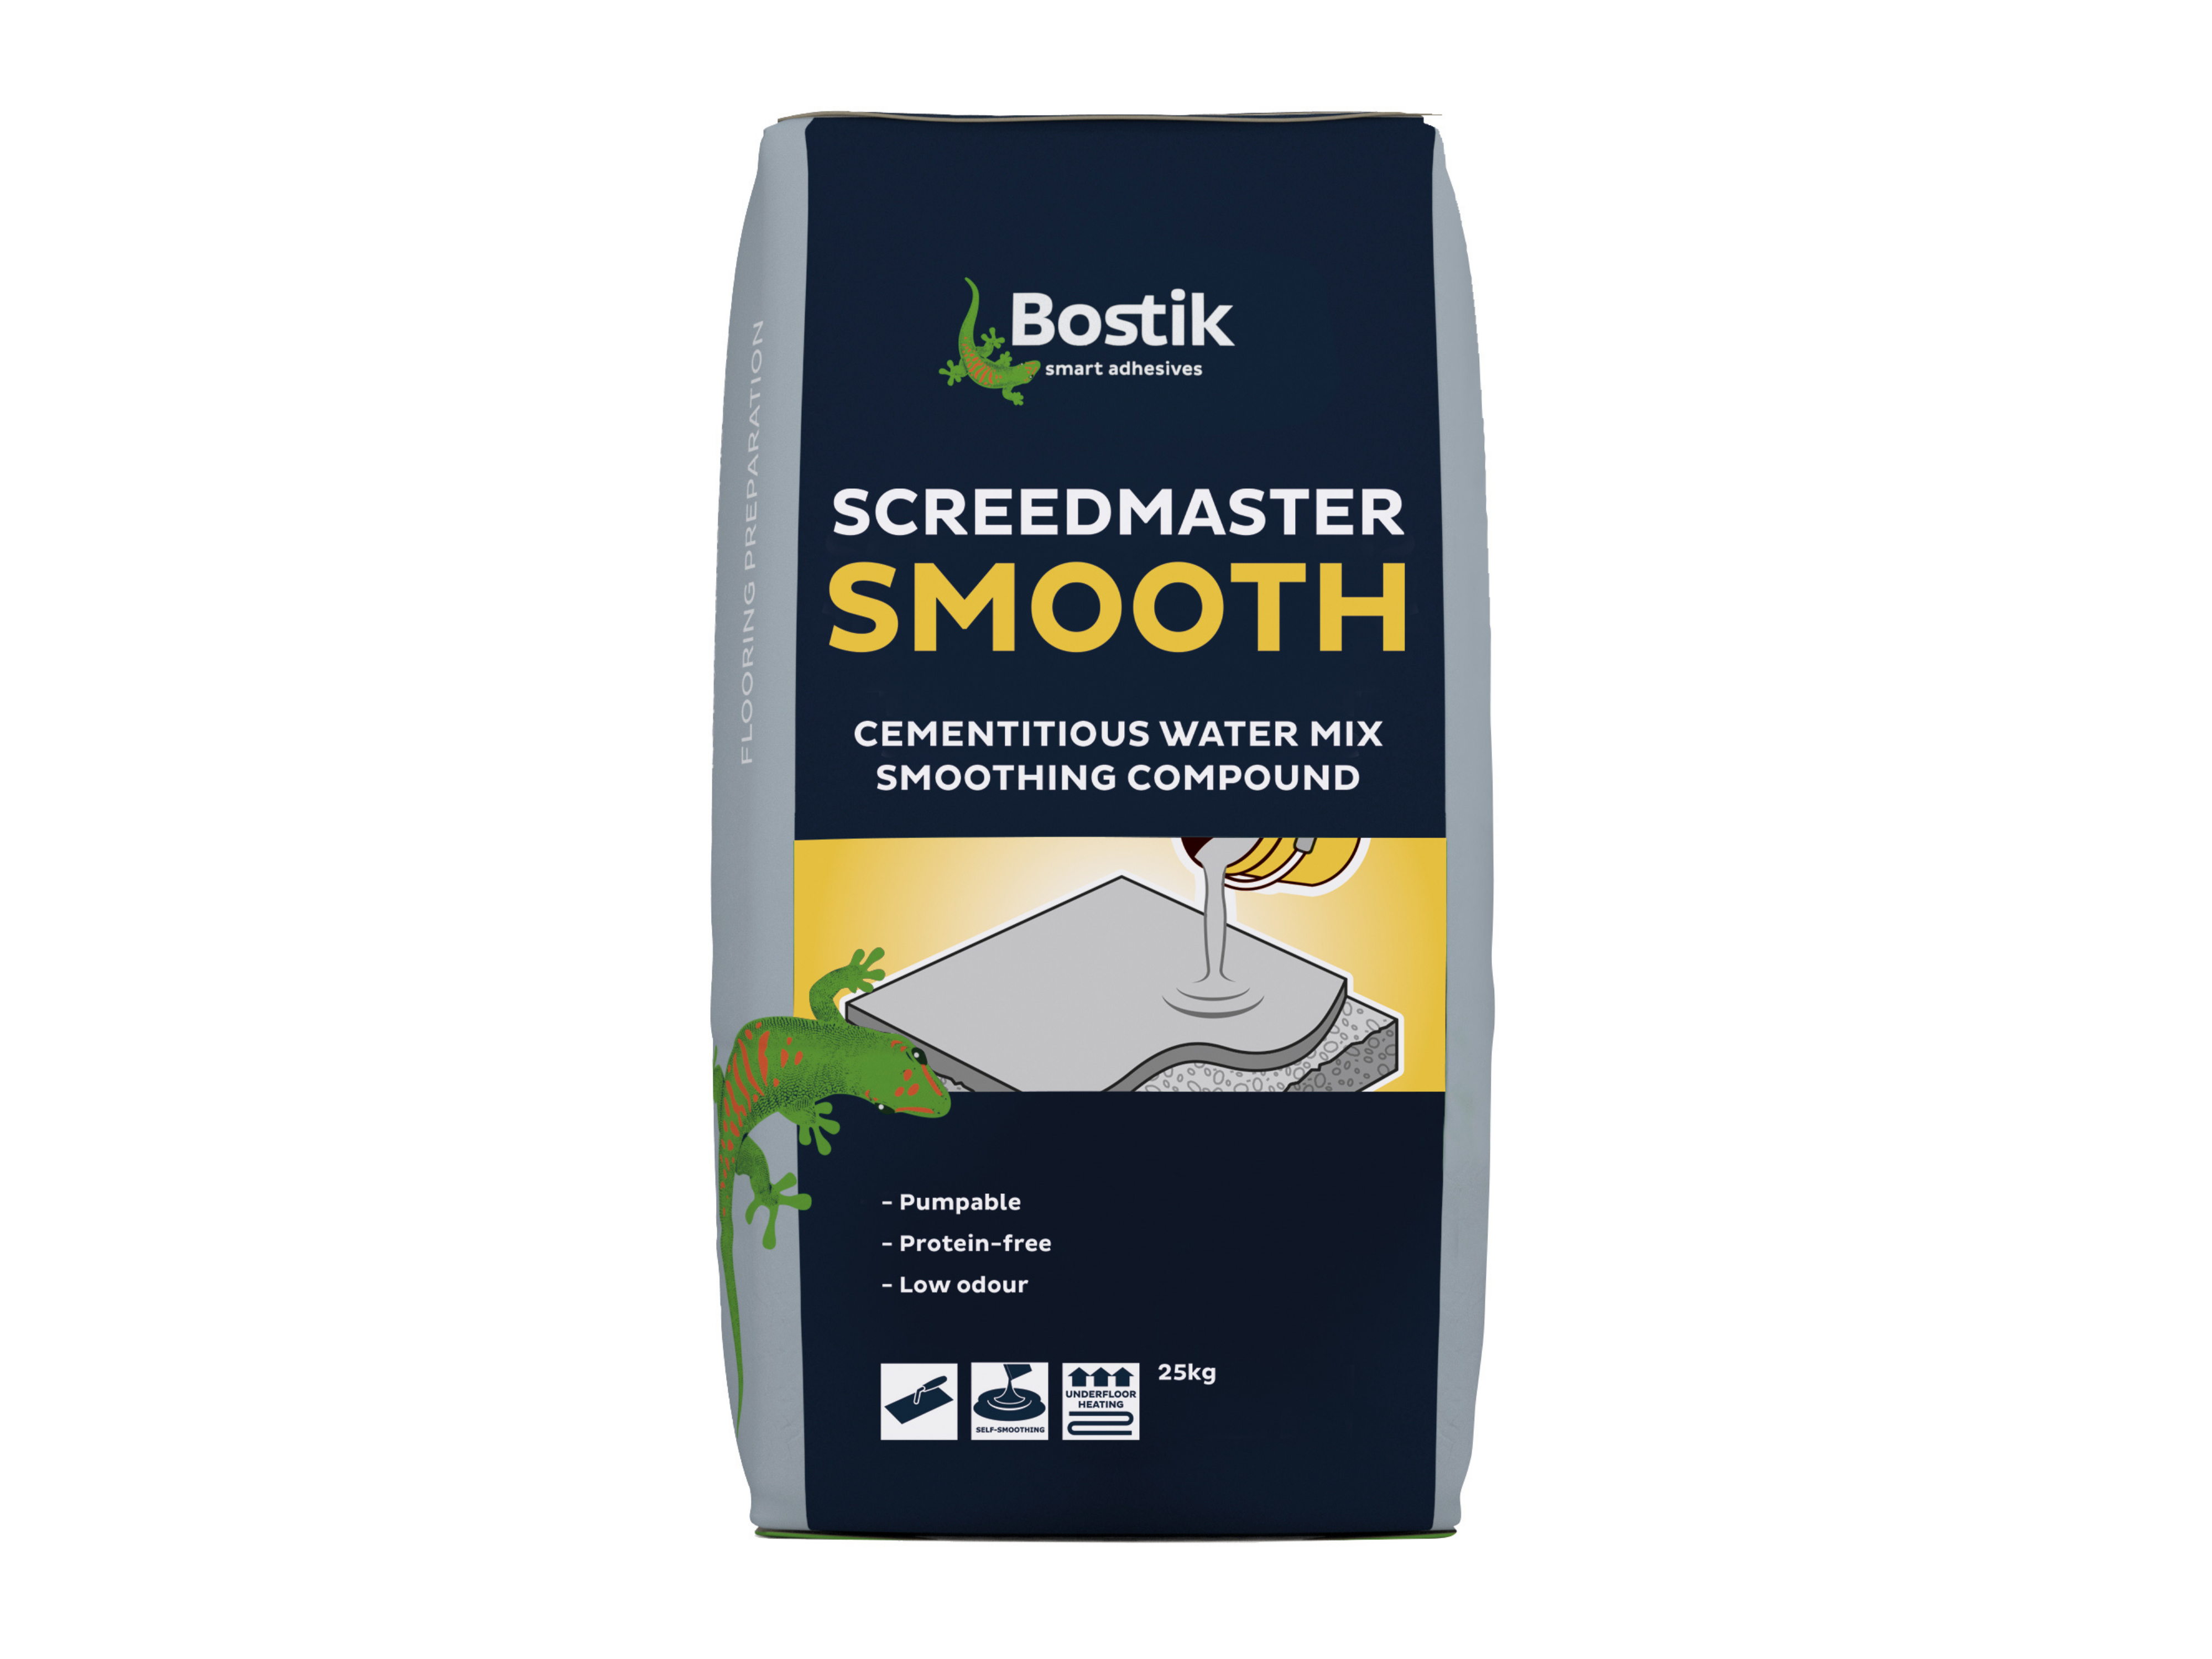 Bostik Screedmaster Smooth 25kg (NEW).png